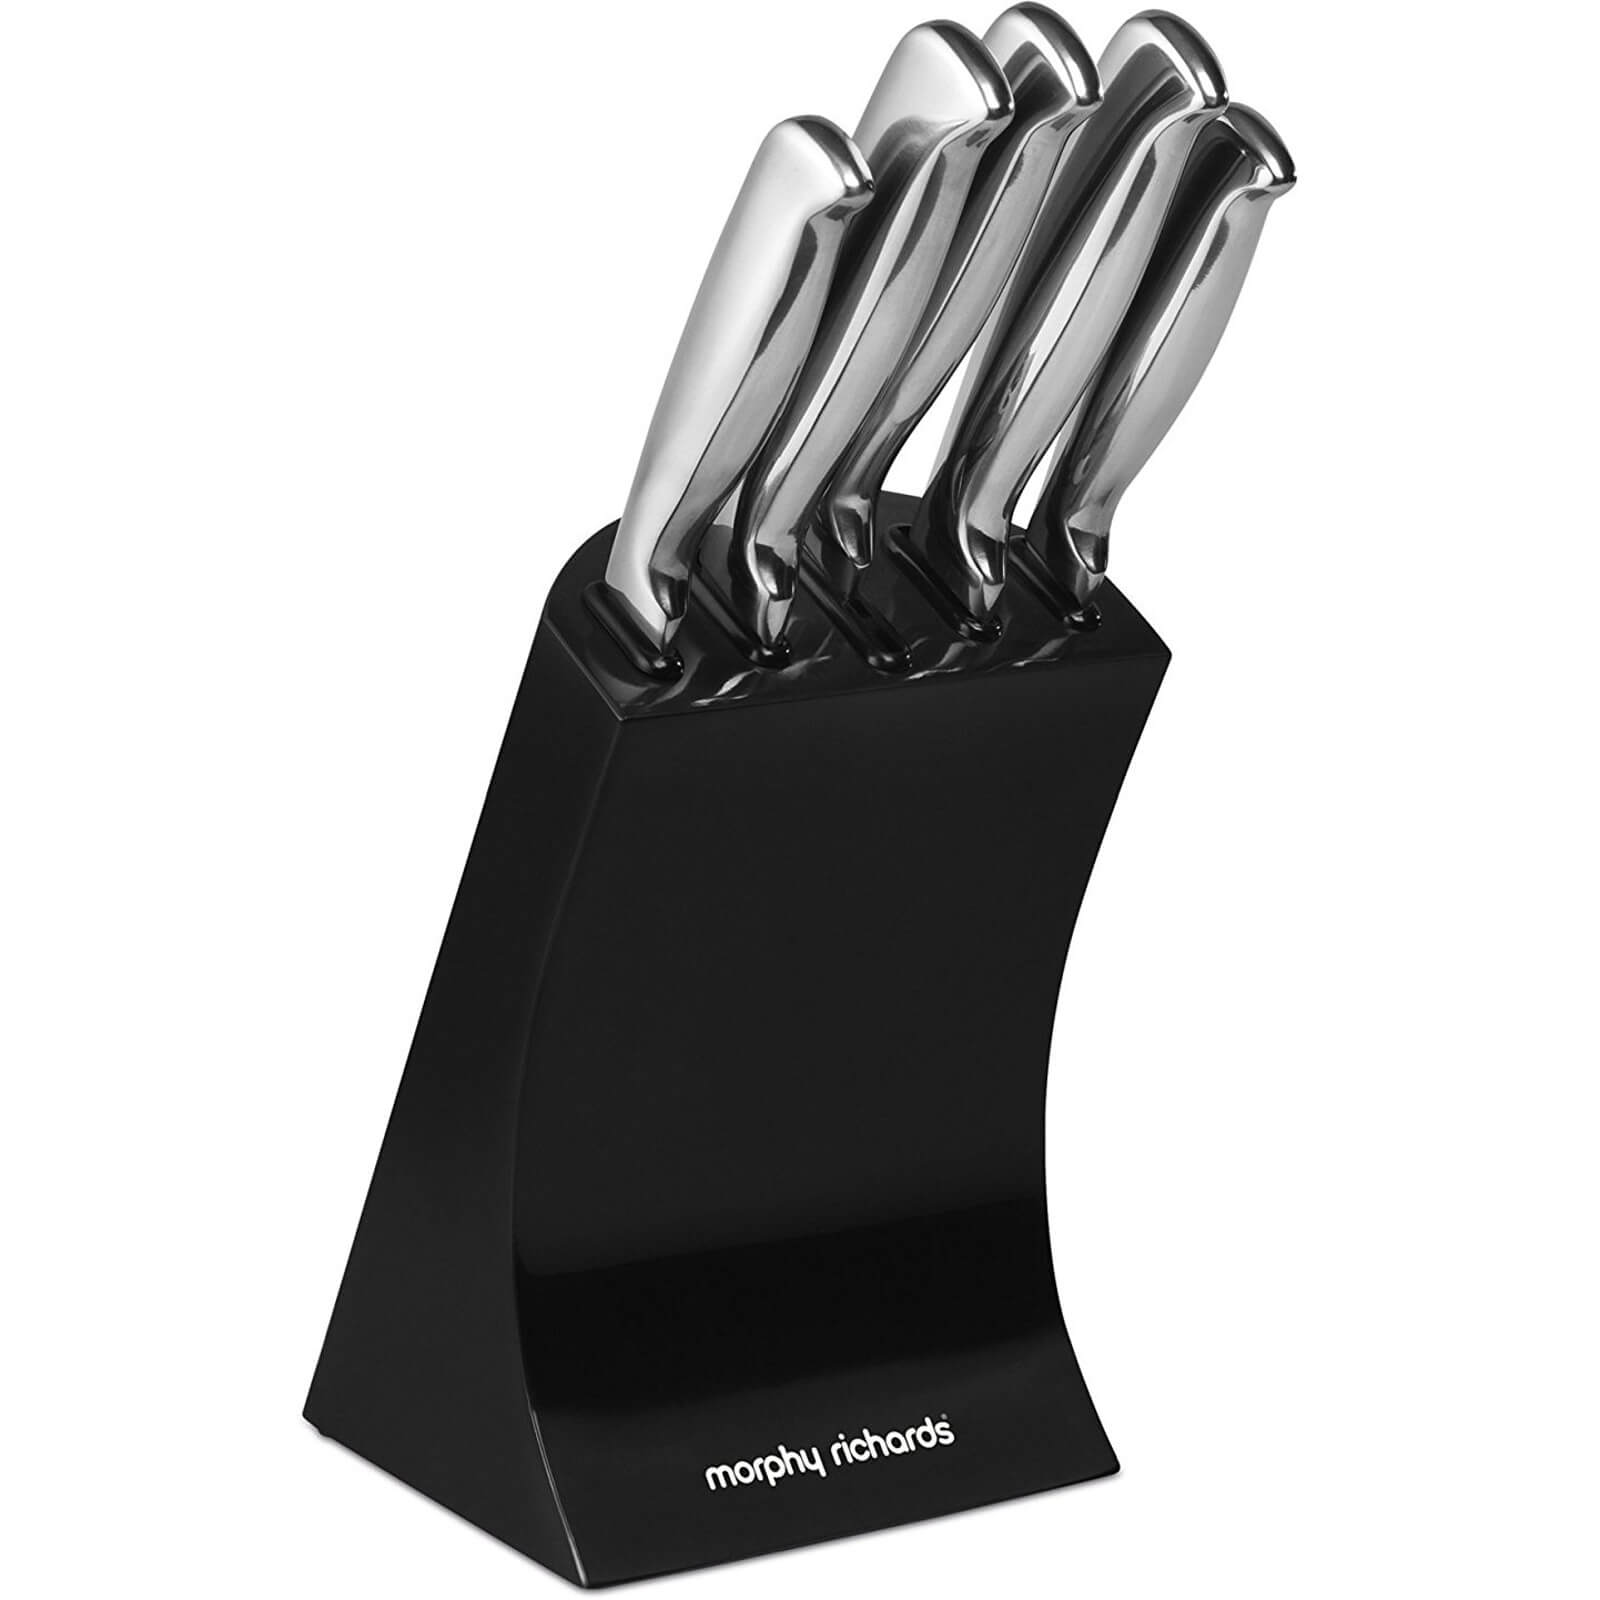 Morphy Richards 46290 5 Piece Knife Block - Black